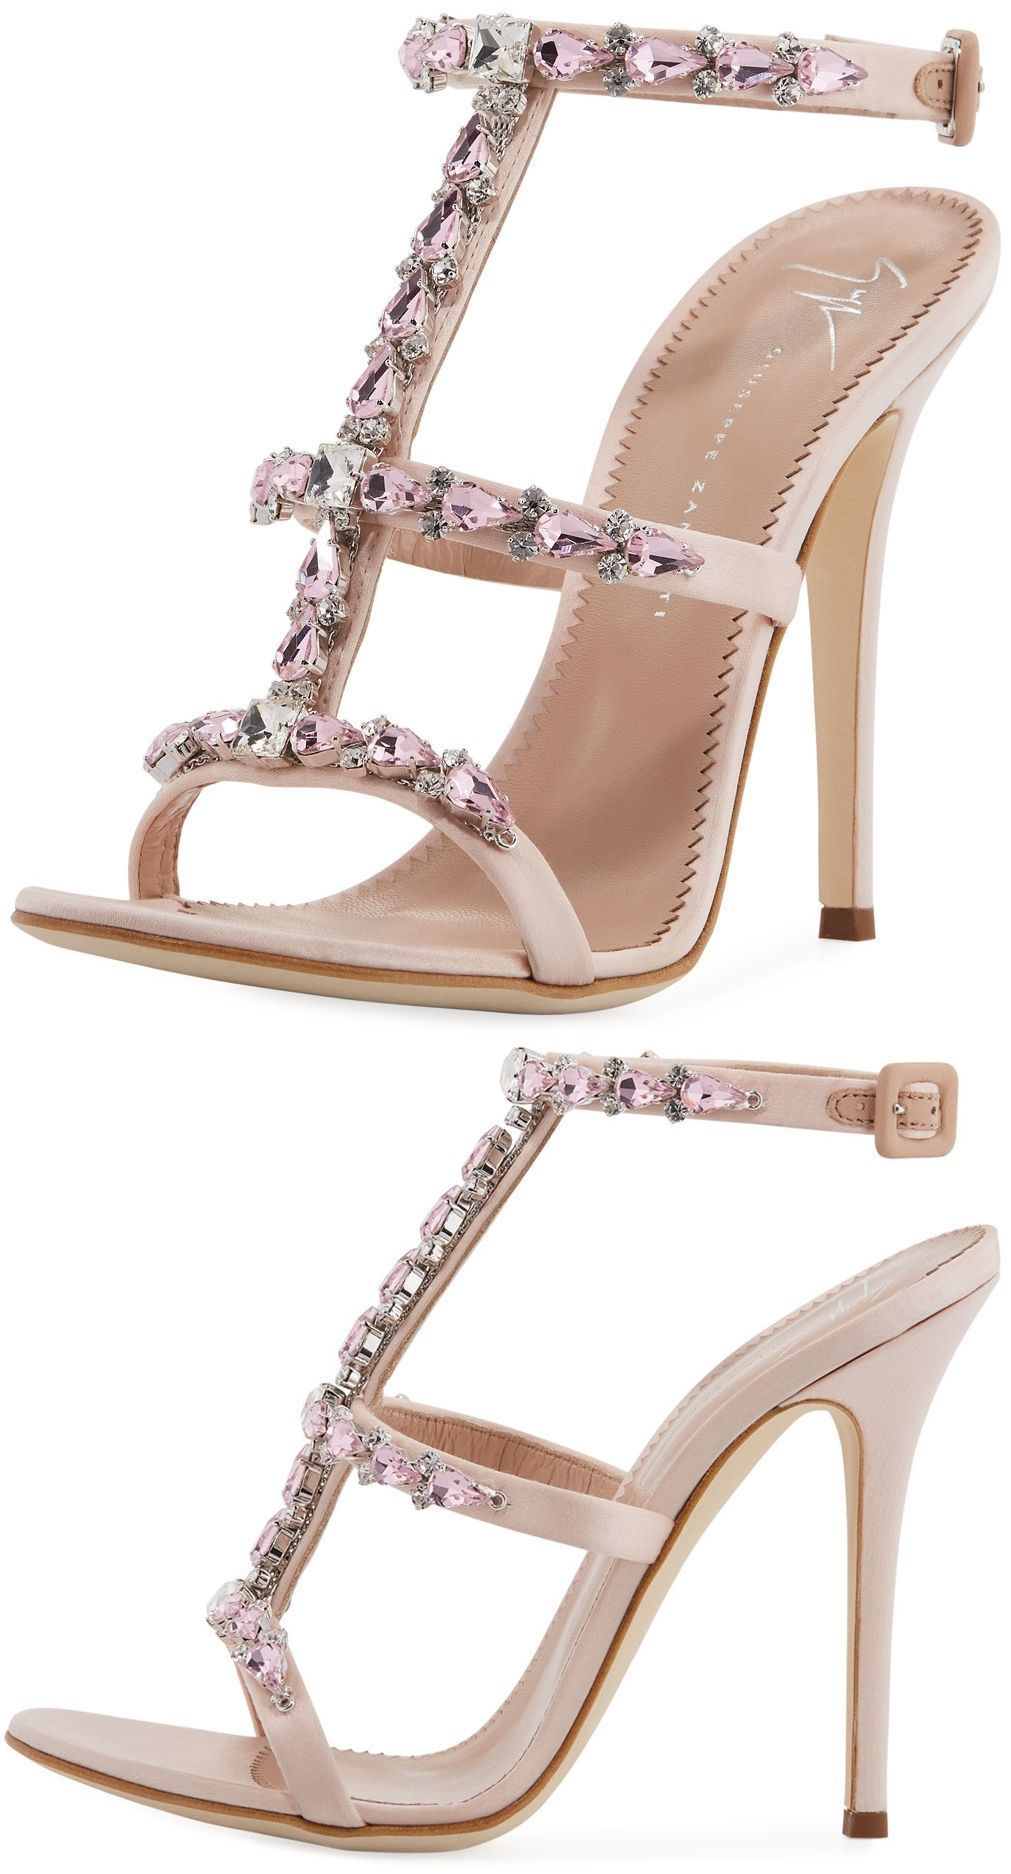 Giuseppe Zanotti crystal embellished satin sandal | Shoes